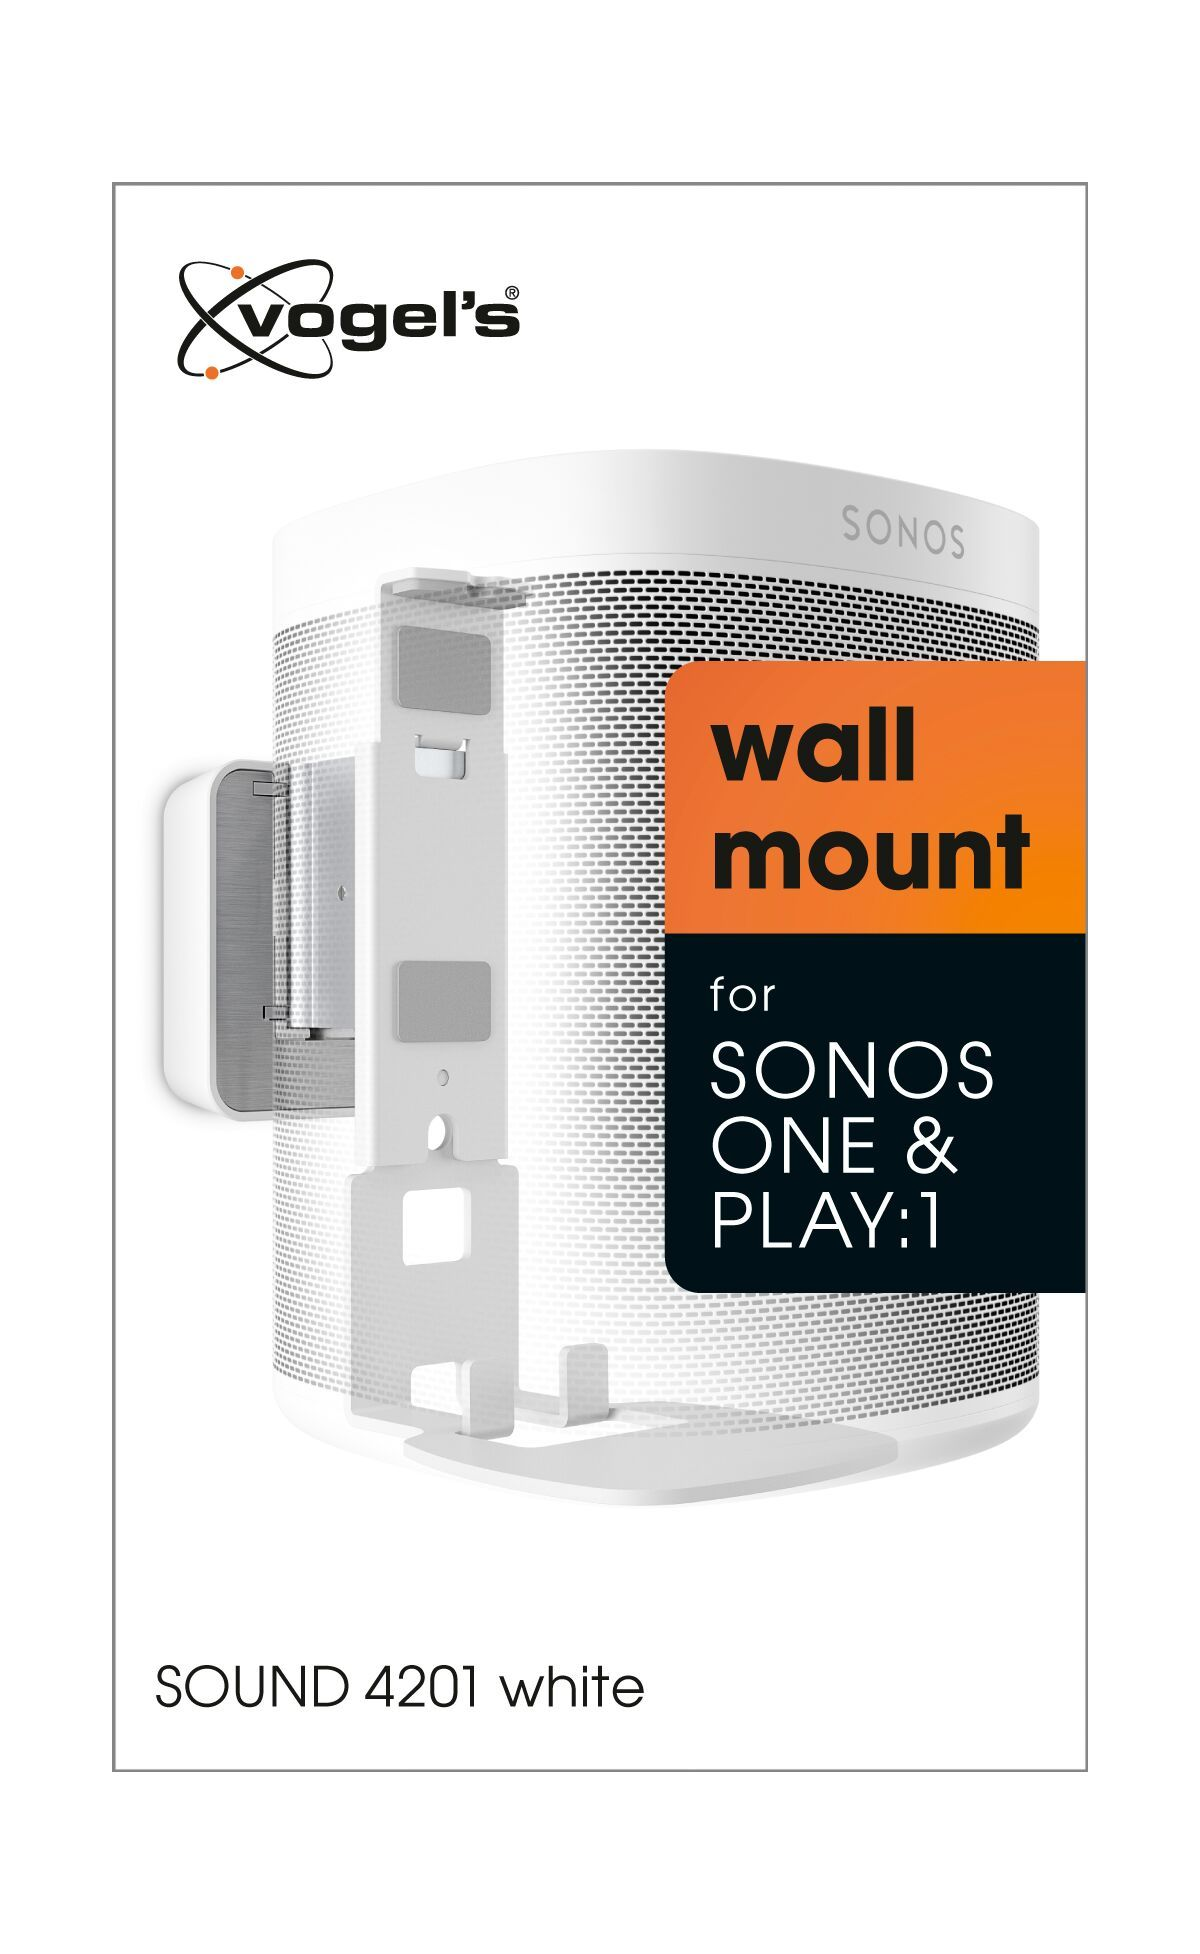 Vogel's SOUND 4201 Soporte de pared para Sonos One (SL) & Play:1 (blanco) - Packaging front